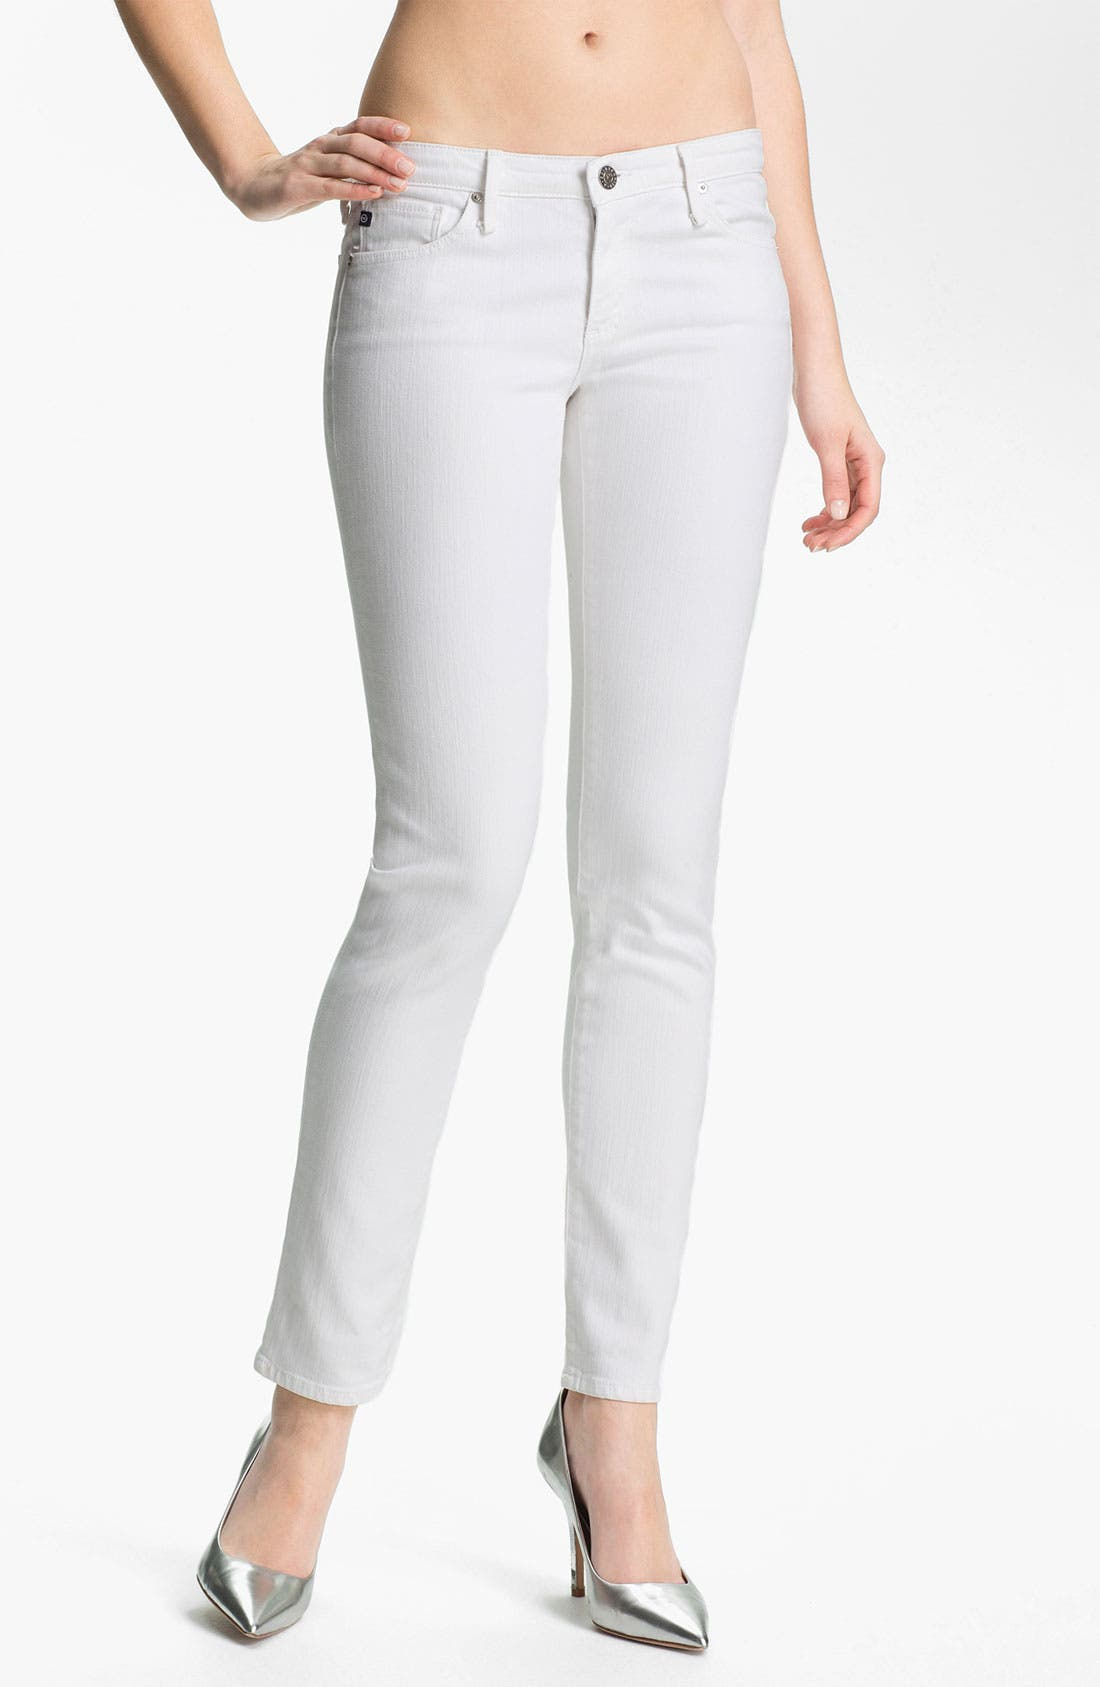 Main Image - AG Jeans 'Stilt' Cigarette Leg Stretch Jeans (White)